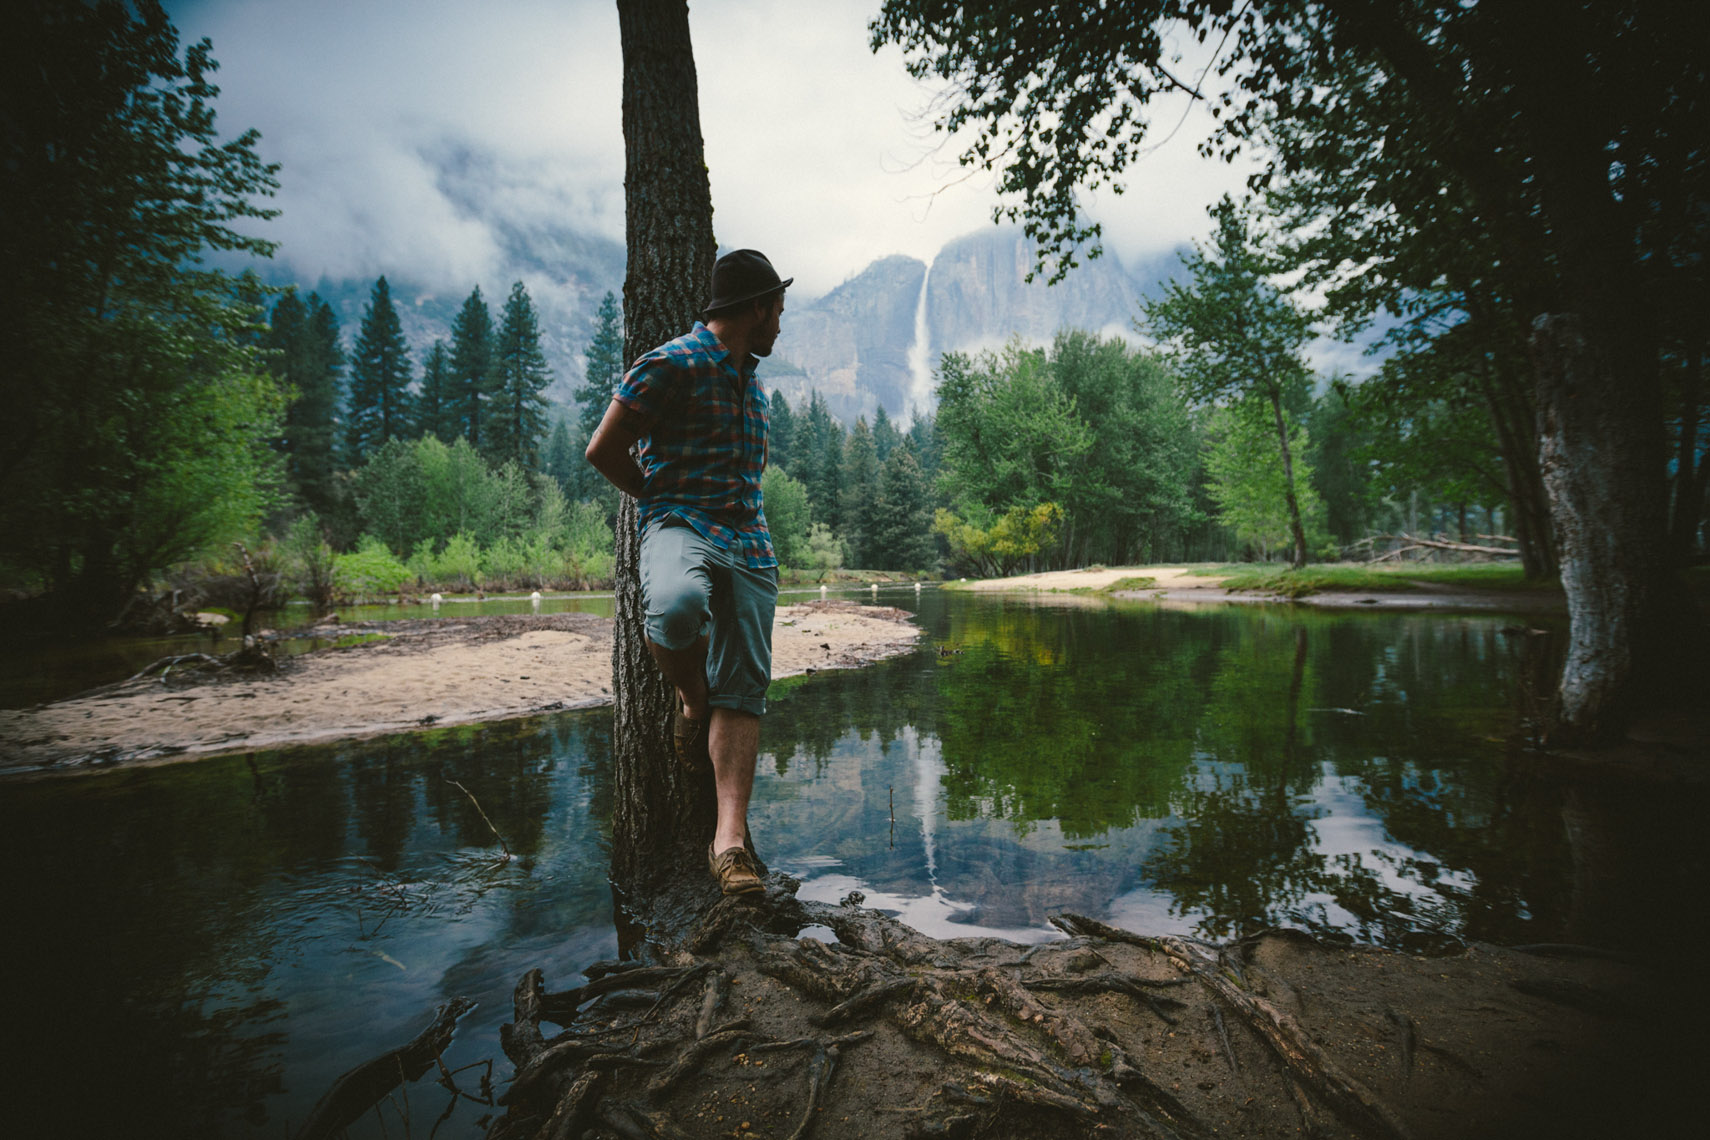 Lifestyle road trip in Northern California for Royal Robbins photographs by Forest Woodward